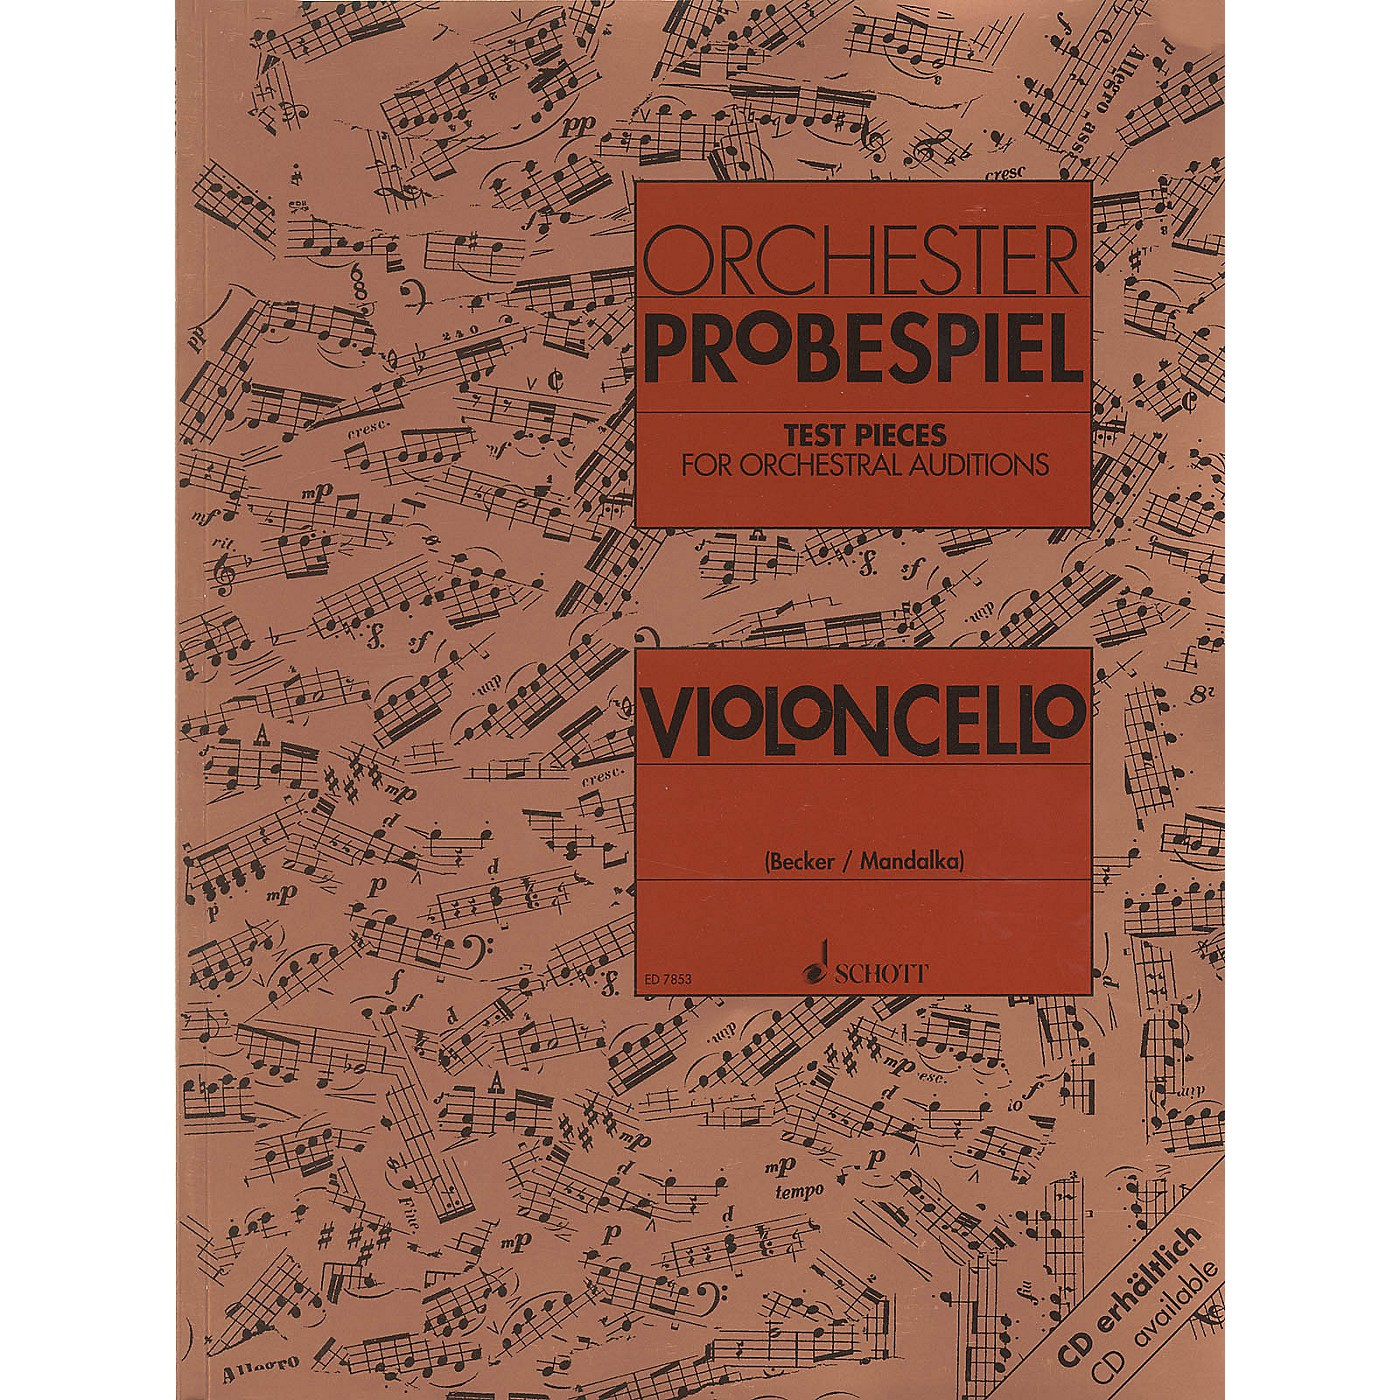 Schott Test Pieces for Orchestral Auditions - Violoncello Schott Composed by Various Arranged by Rolf Becker thumbnail